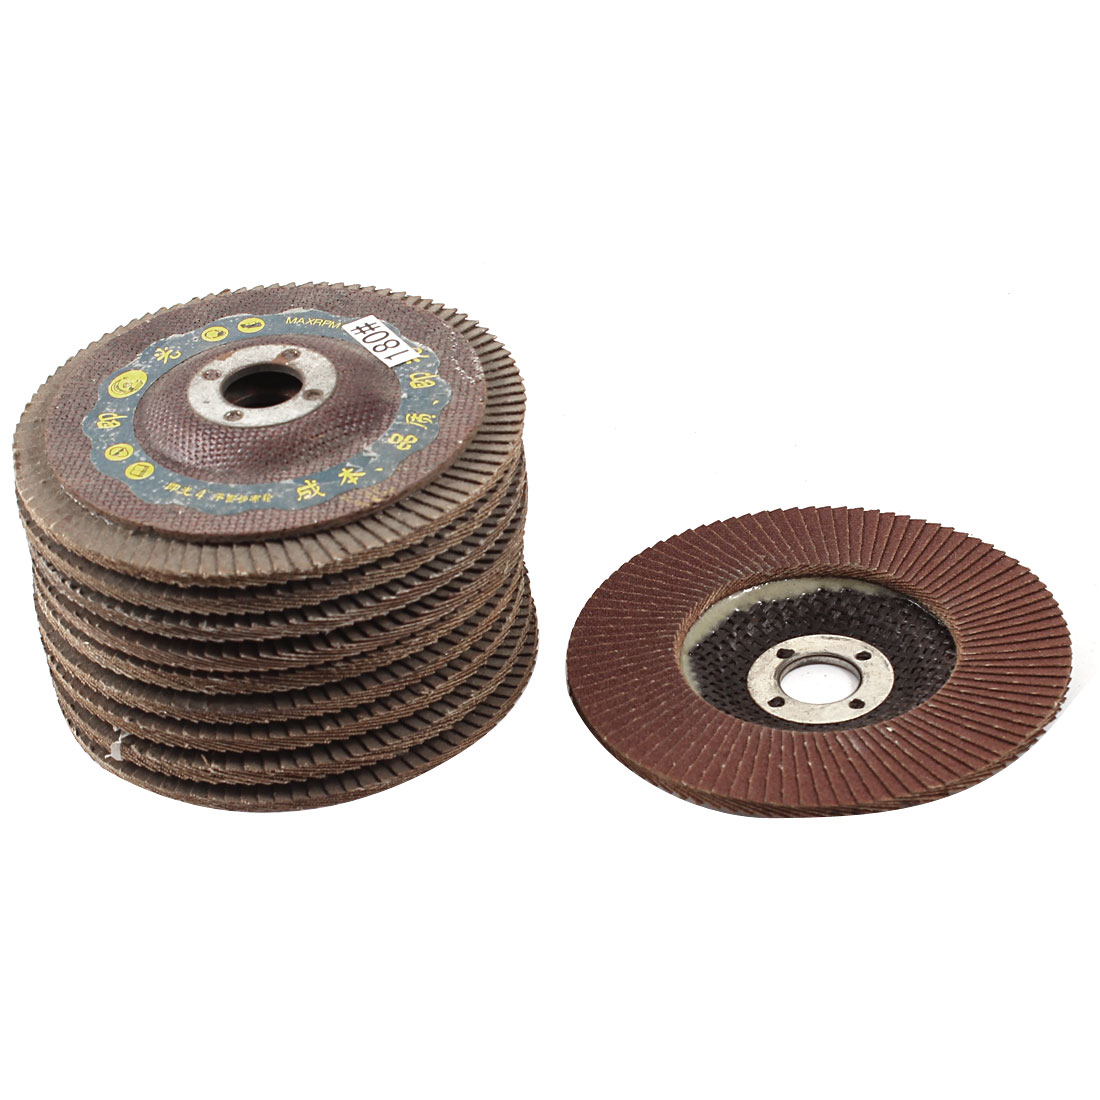 Metal Polishing 100mm Dia 180# Flap Sanding Abrasive Wheels Discs 10Pcs